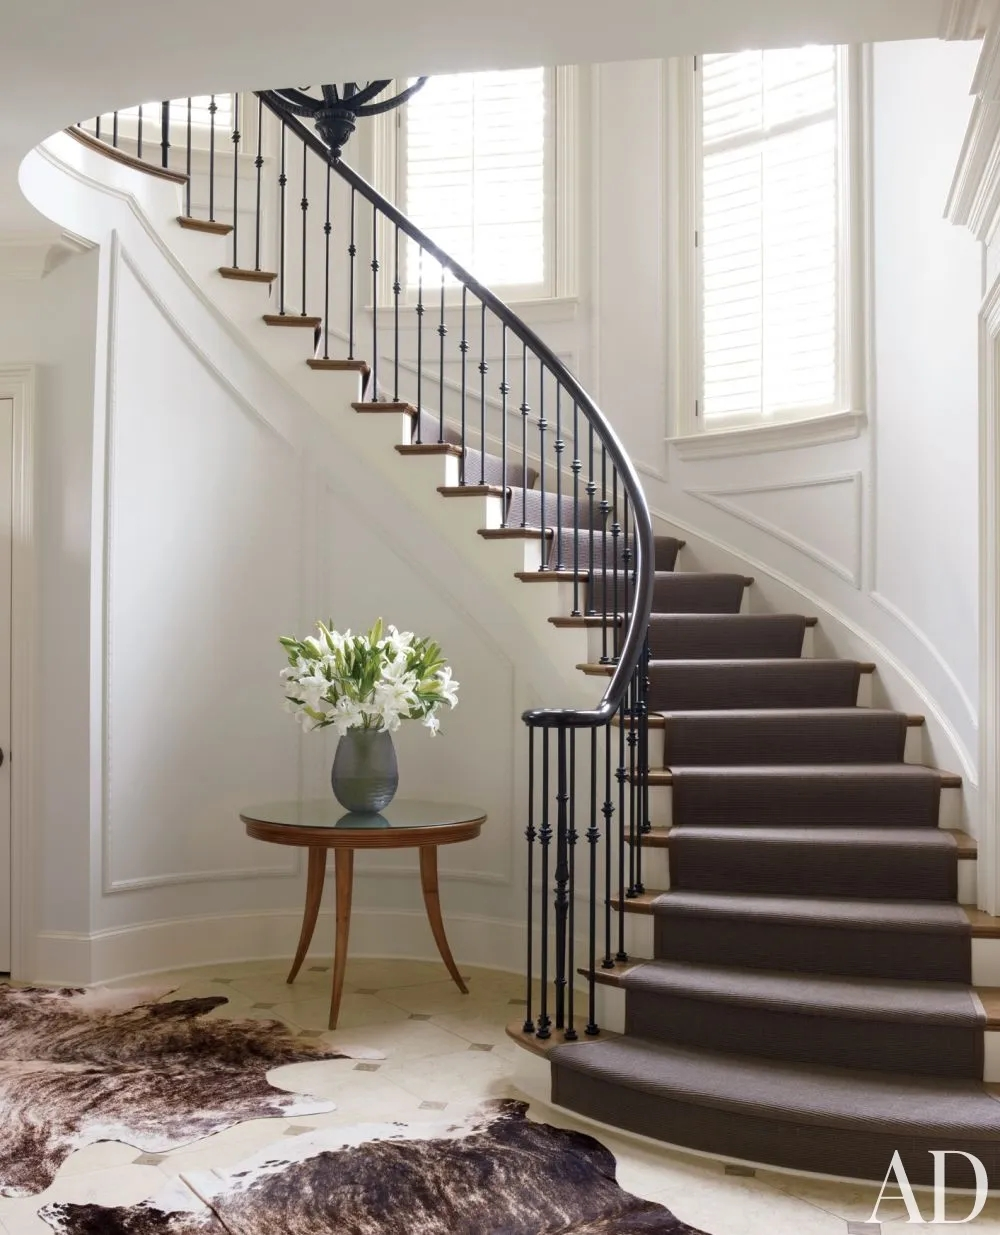 Types Of Stairs Explained Architectural Digest   Used Spiral Staircase For Sale Near Me   Staircase Kits   Demose Hardware   Wrought Iron   Railing   Stainless Steel